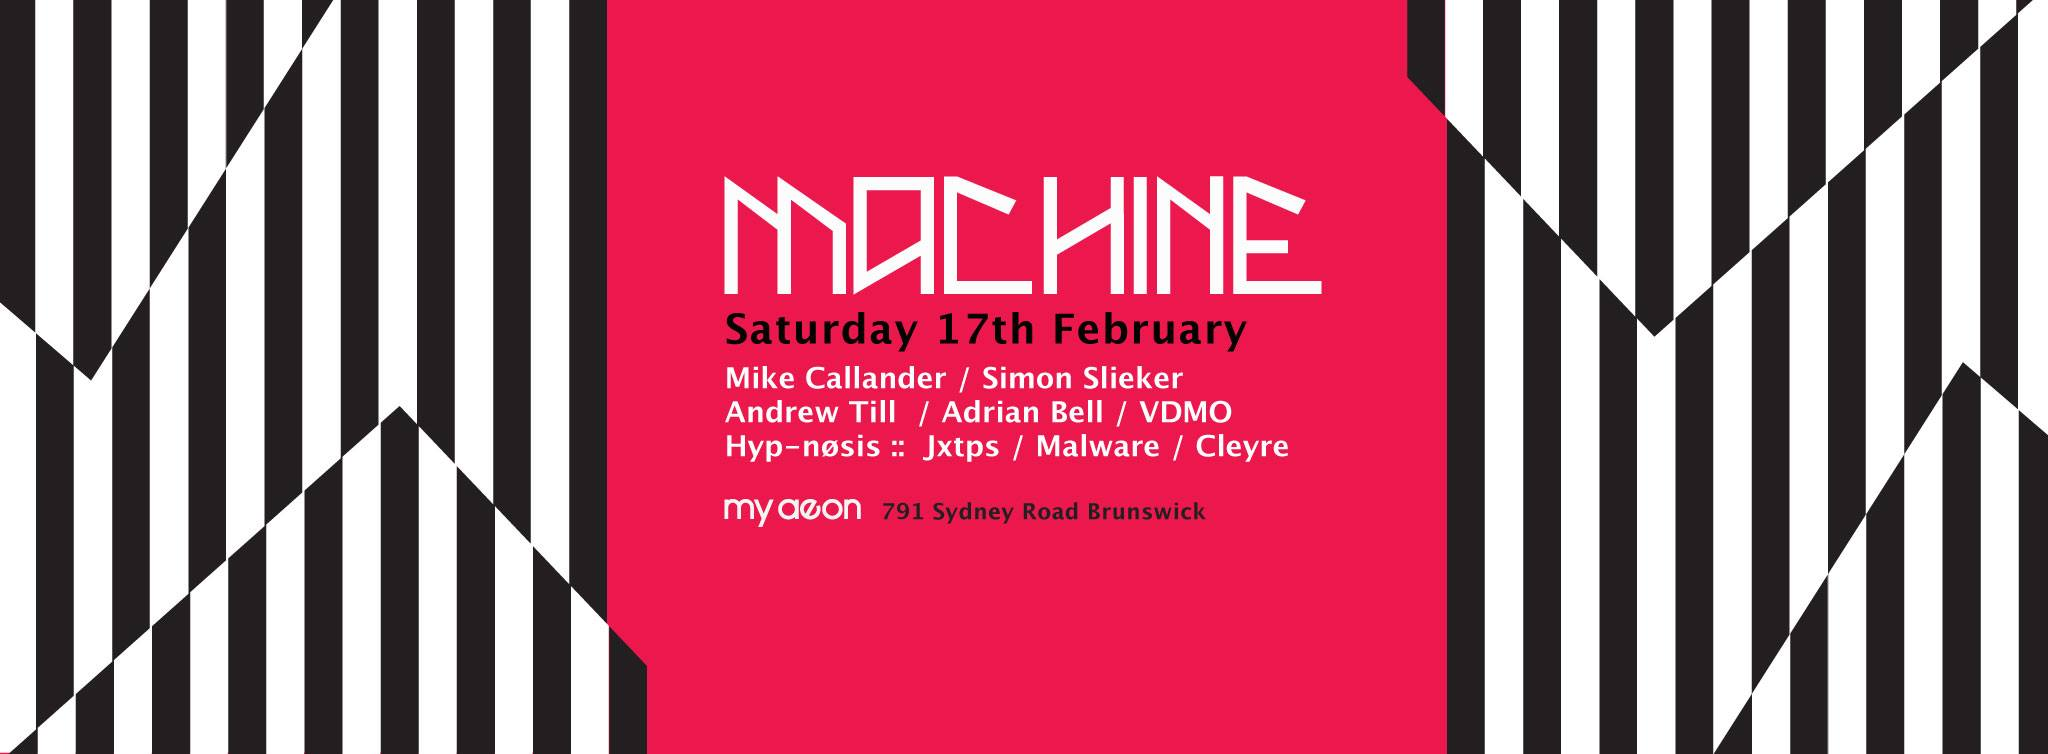 Machine - Systems Reset - 17th Feb 2018 @MyAeon